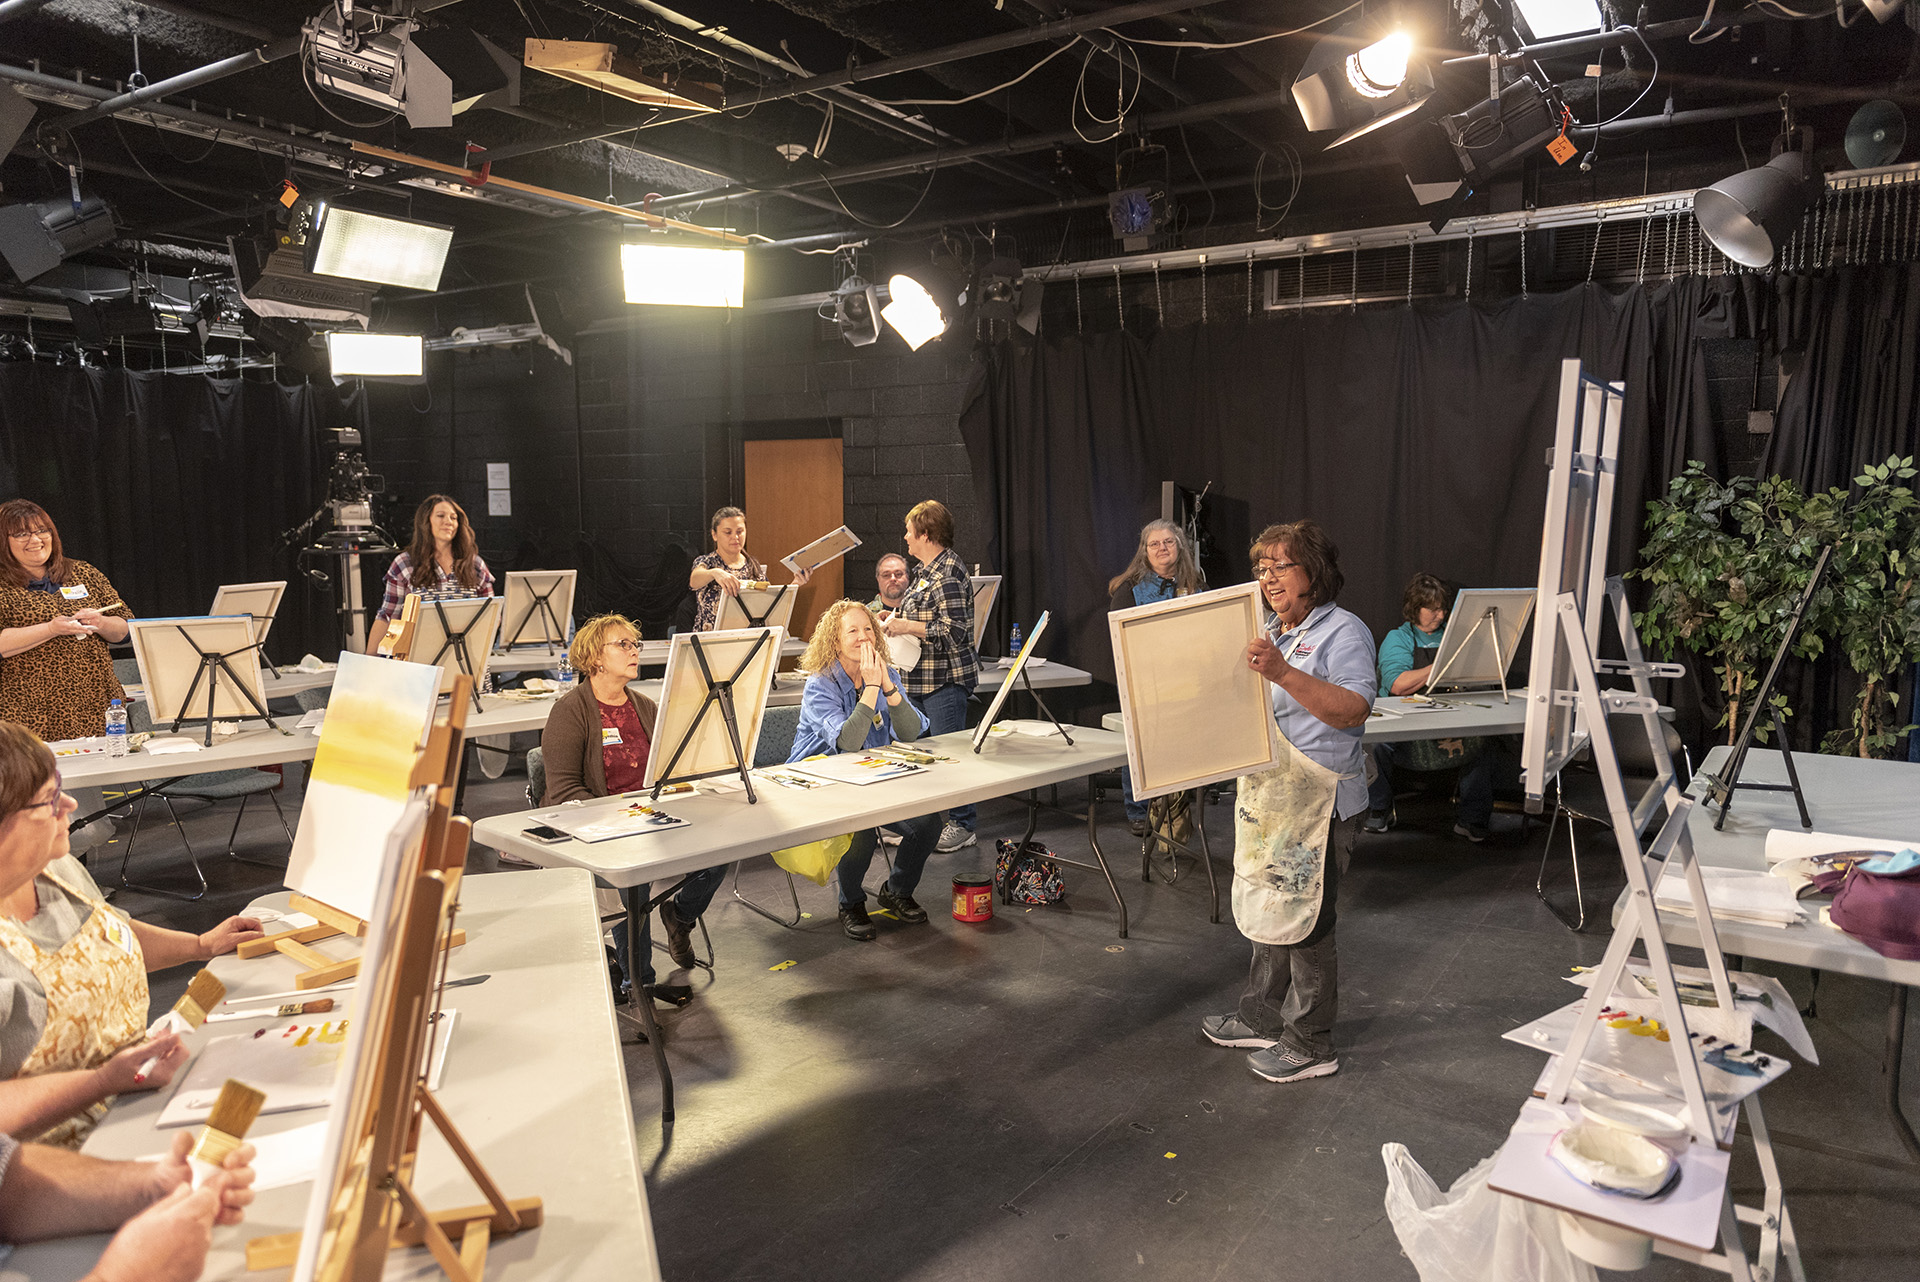 Delta College Public Media hosts many community events, like a Bob Ross painting class.